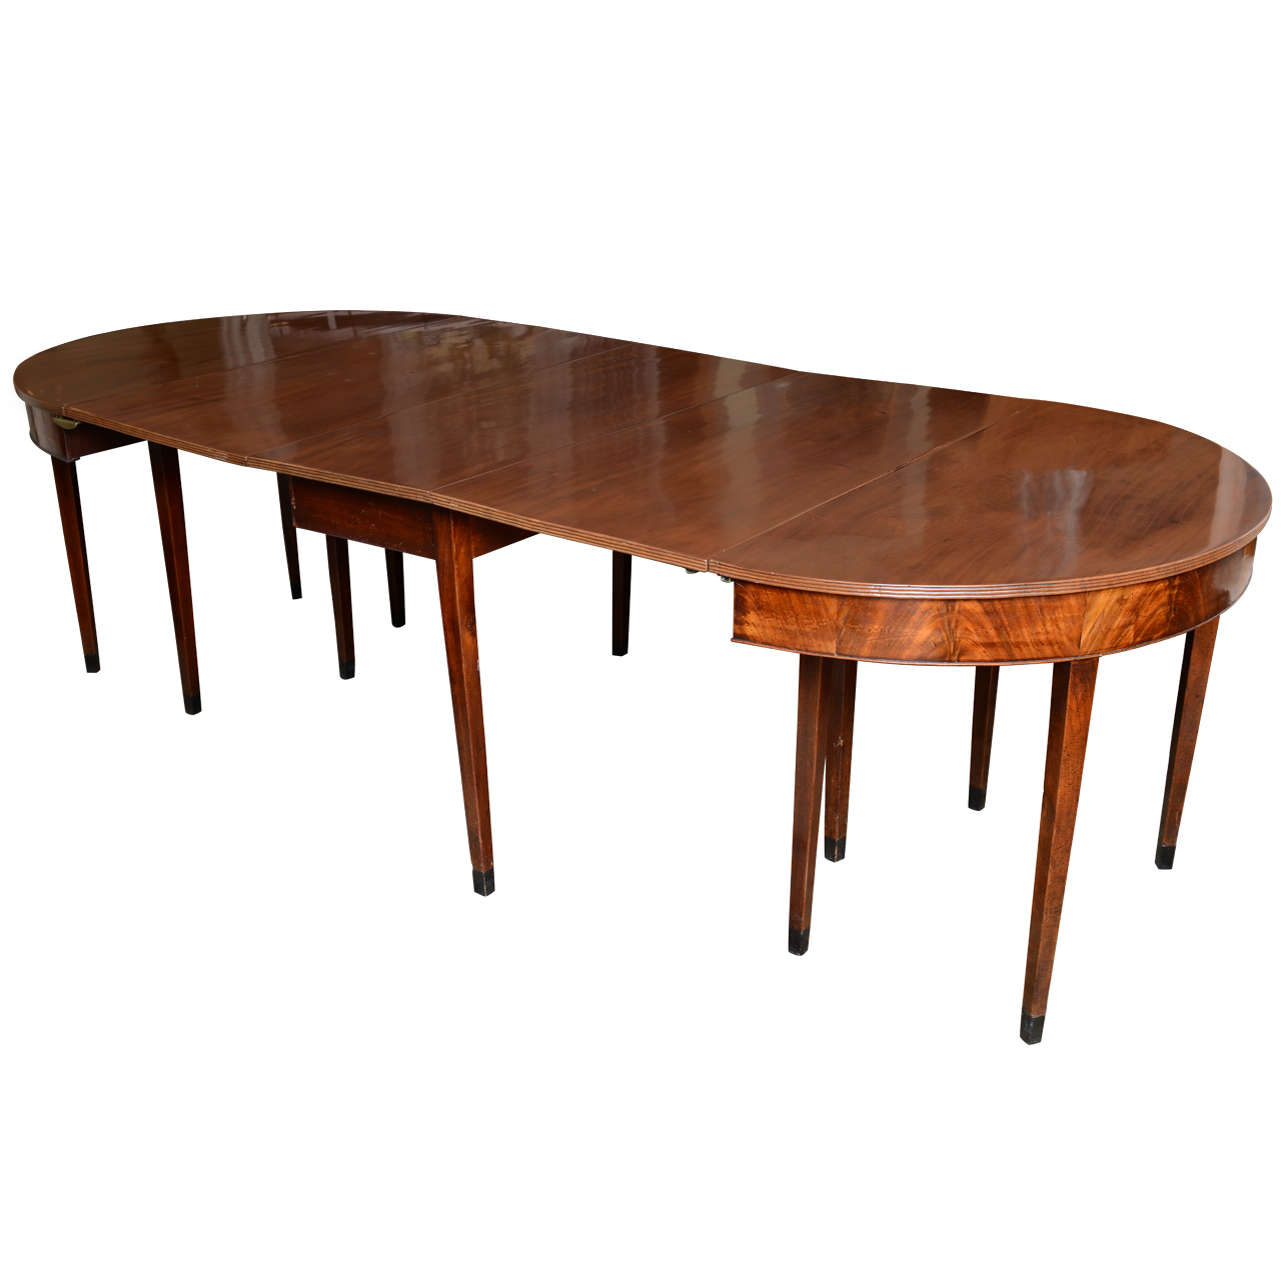 amazing 19th century english mahogany dining table at 1stdibs